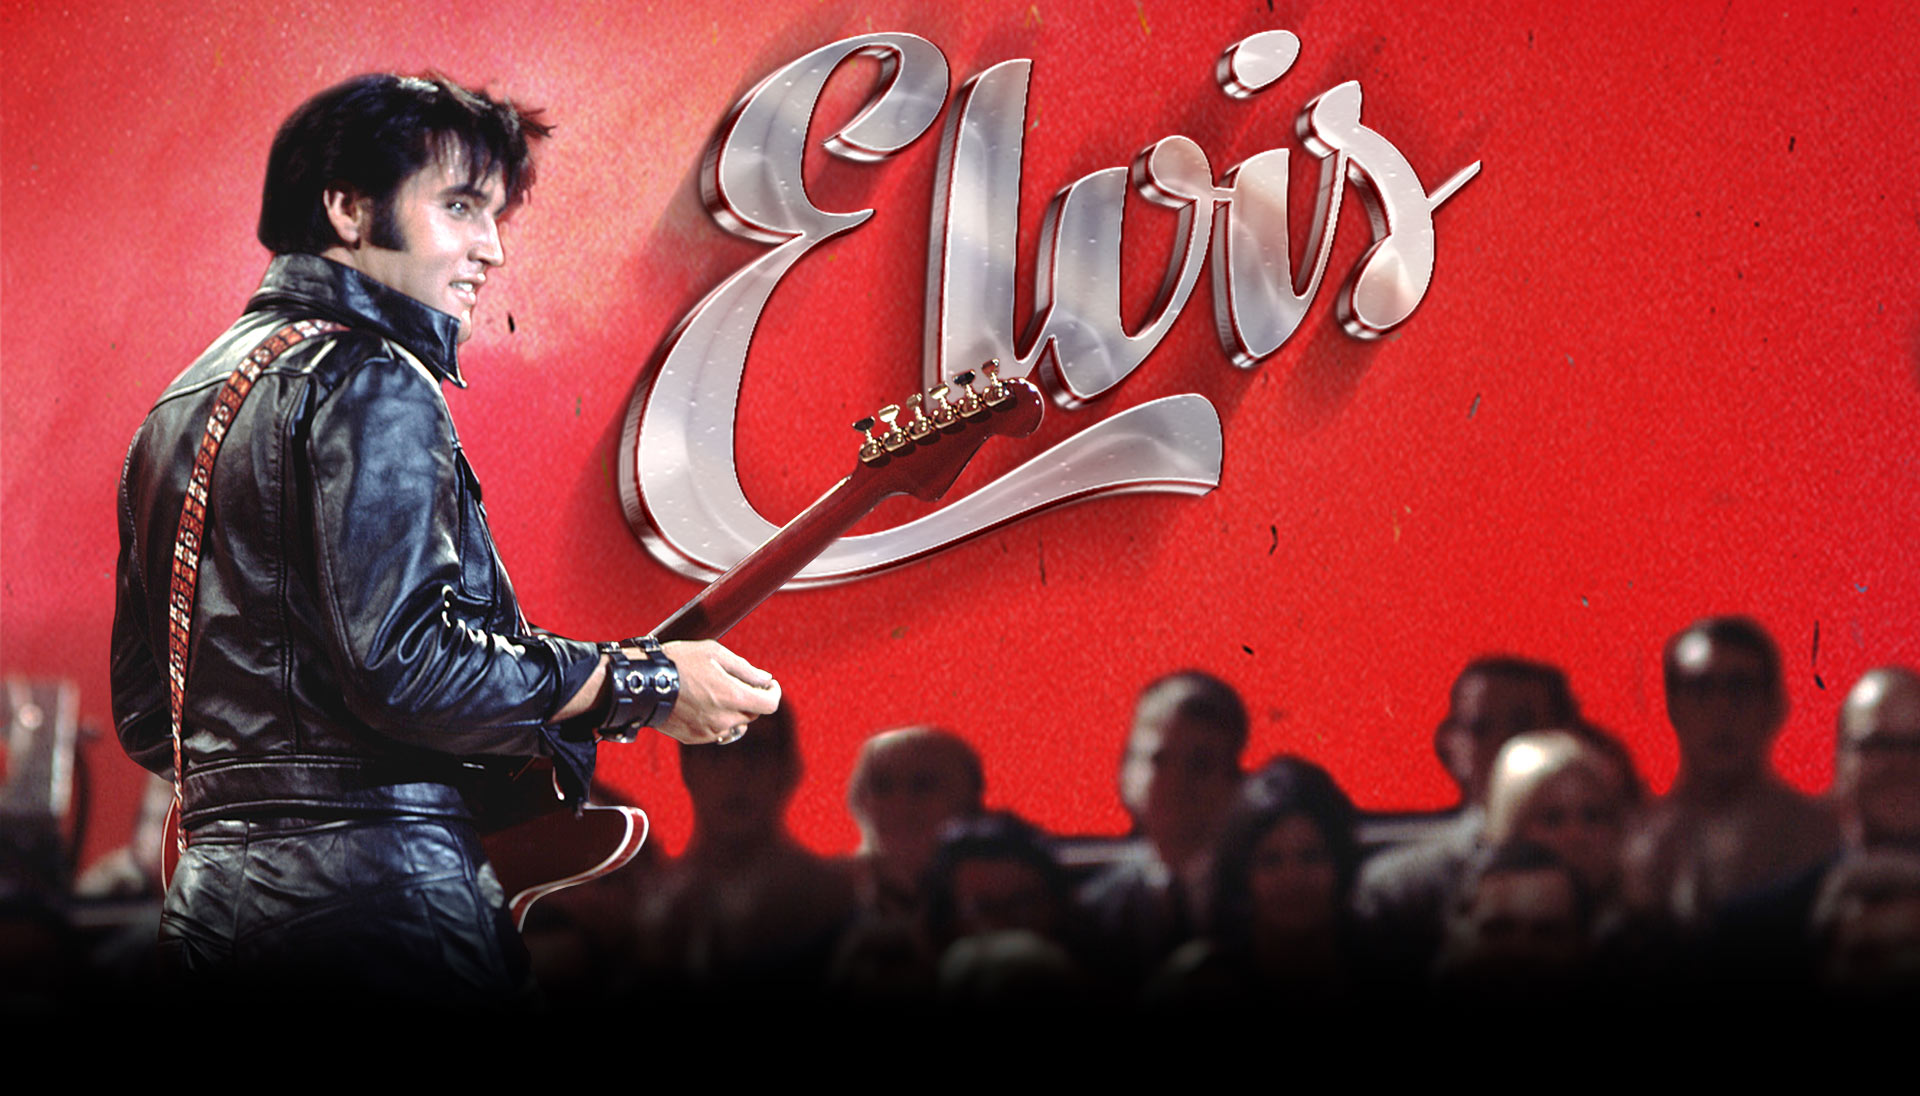 Niagara Falls Elvis Festival: April 20th - 22nd, 2018